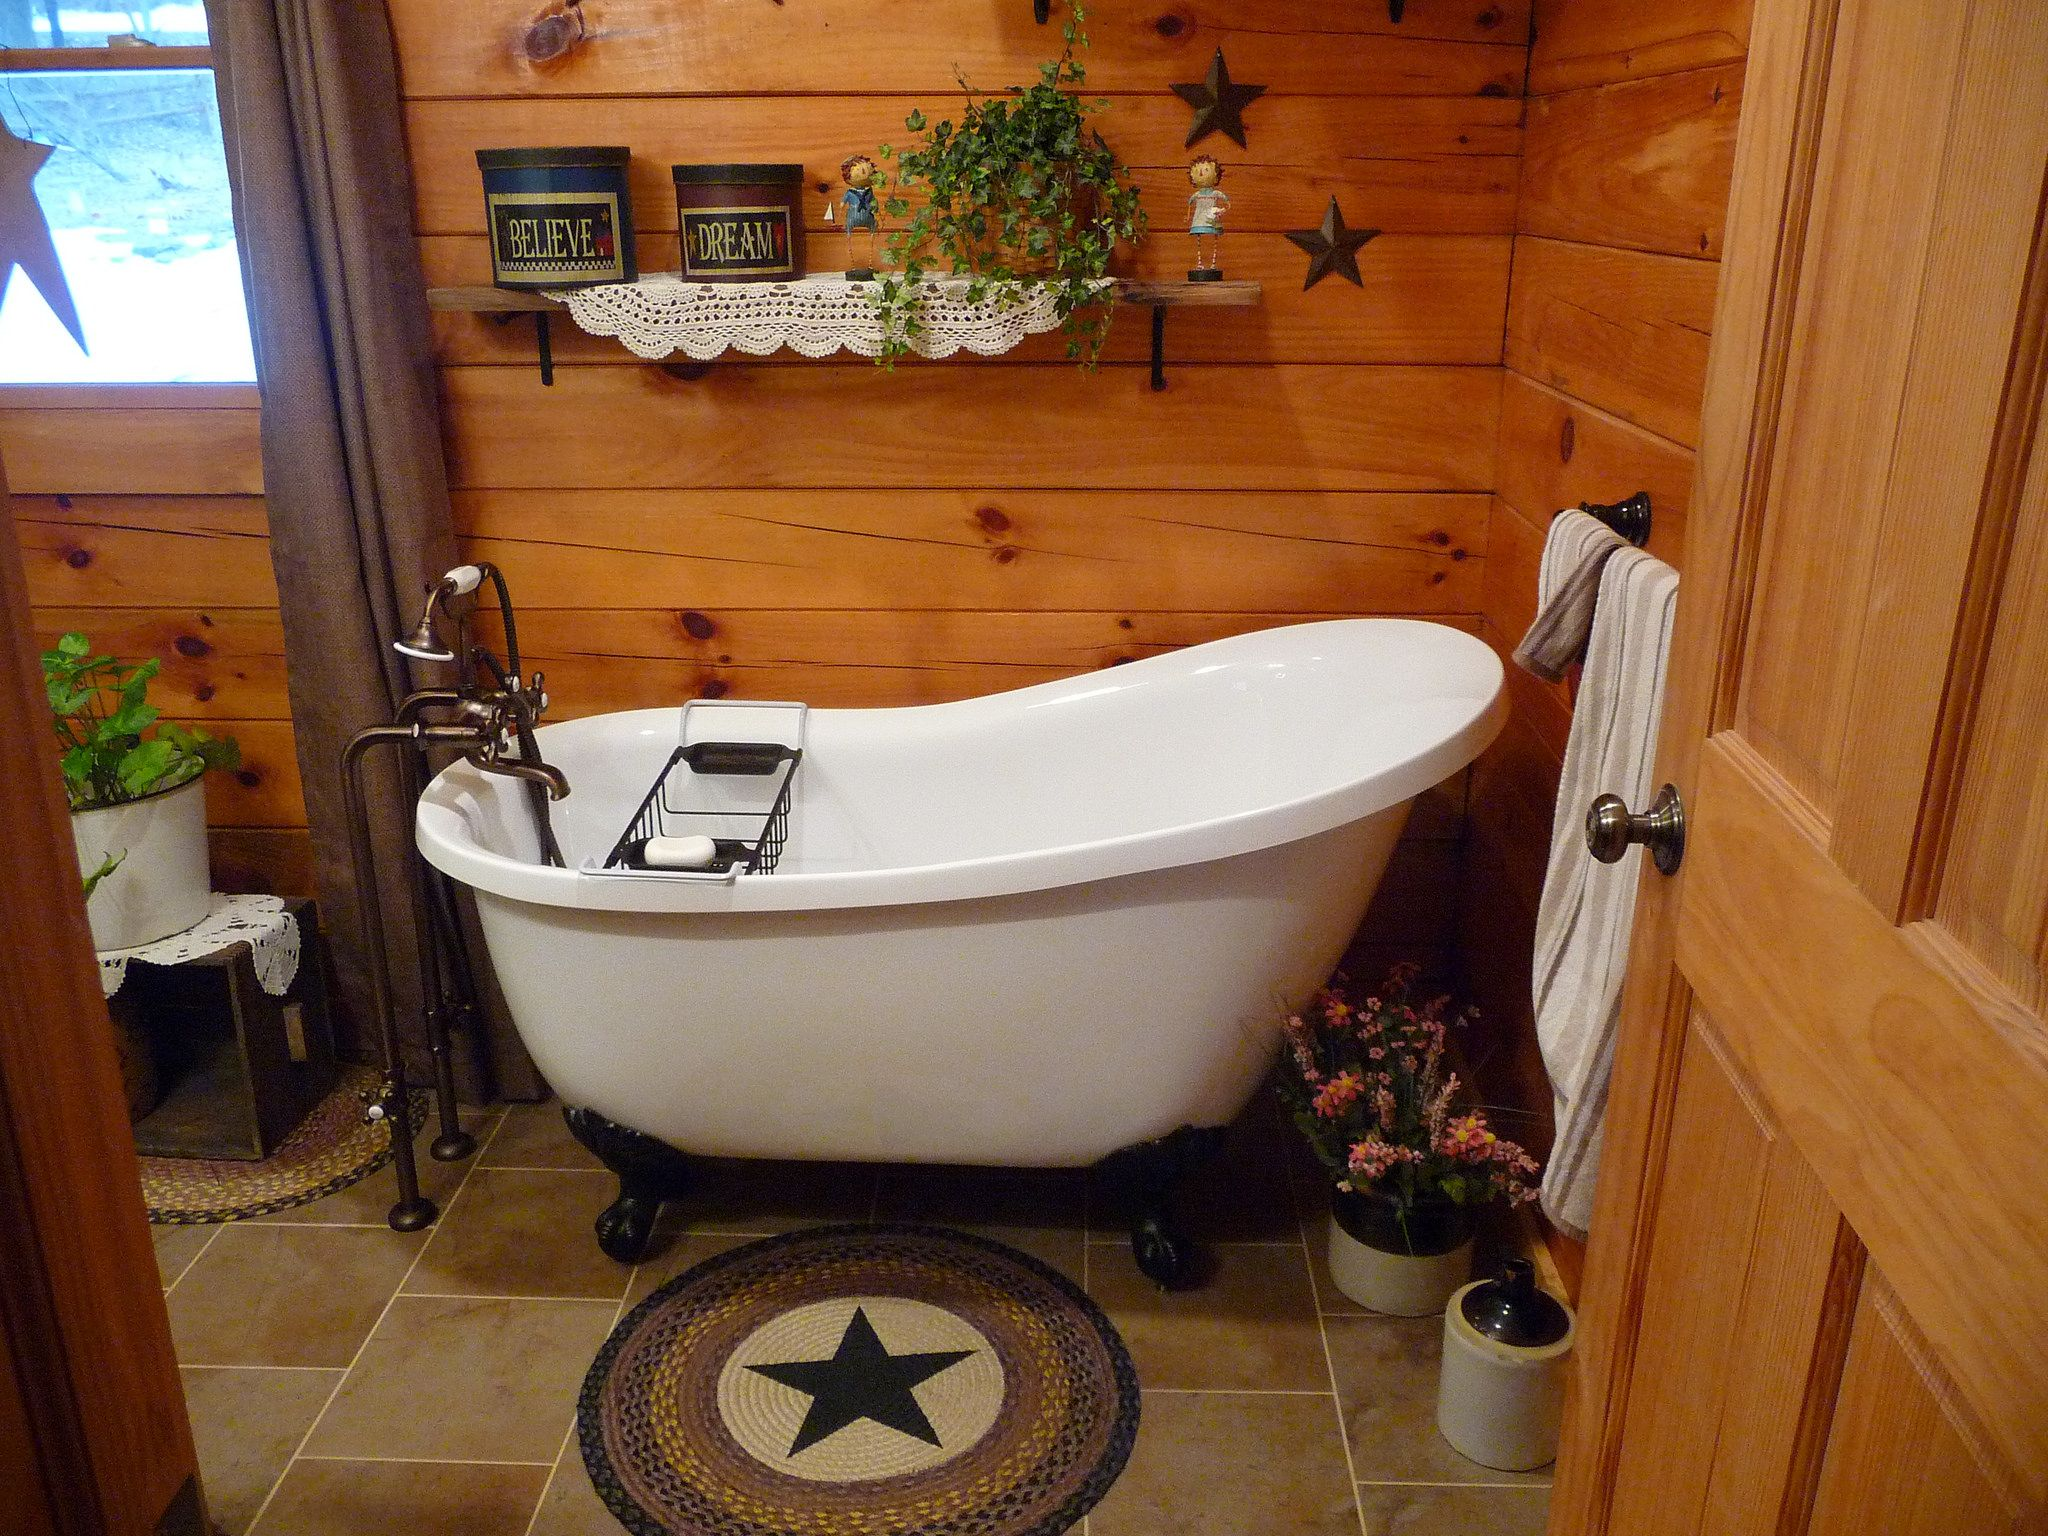 Phibbs | Cast iron tub, Shower tub and Plumbing fixtures